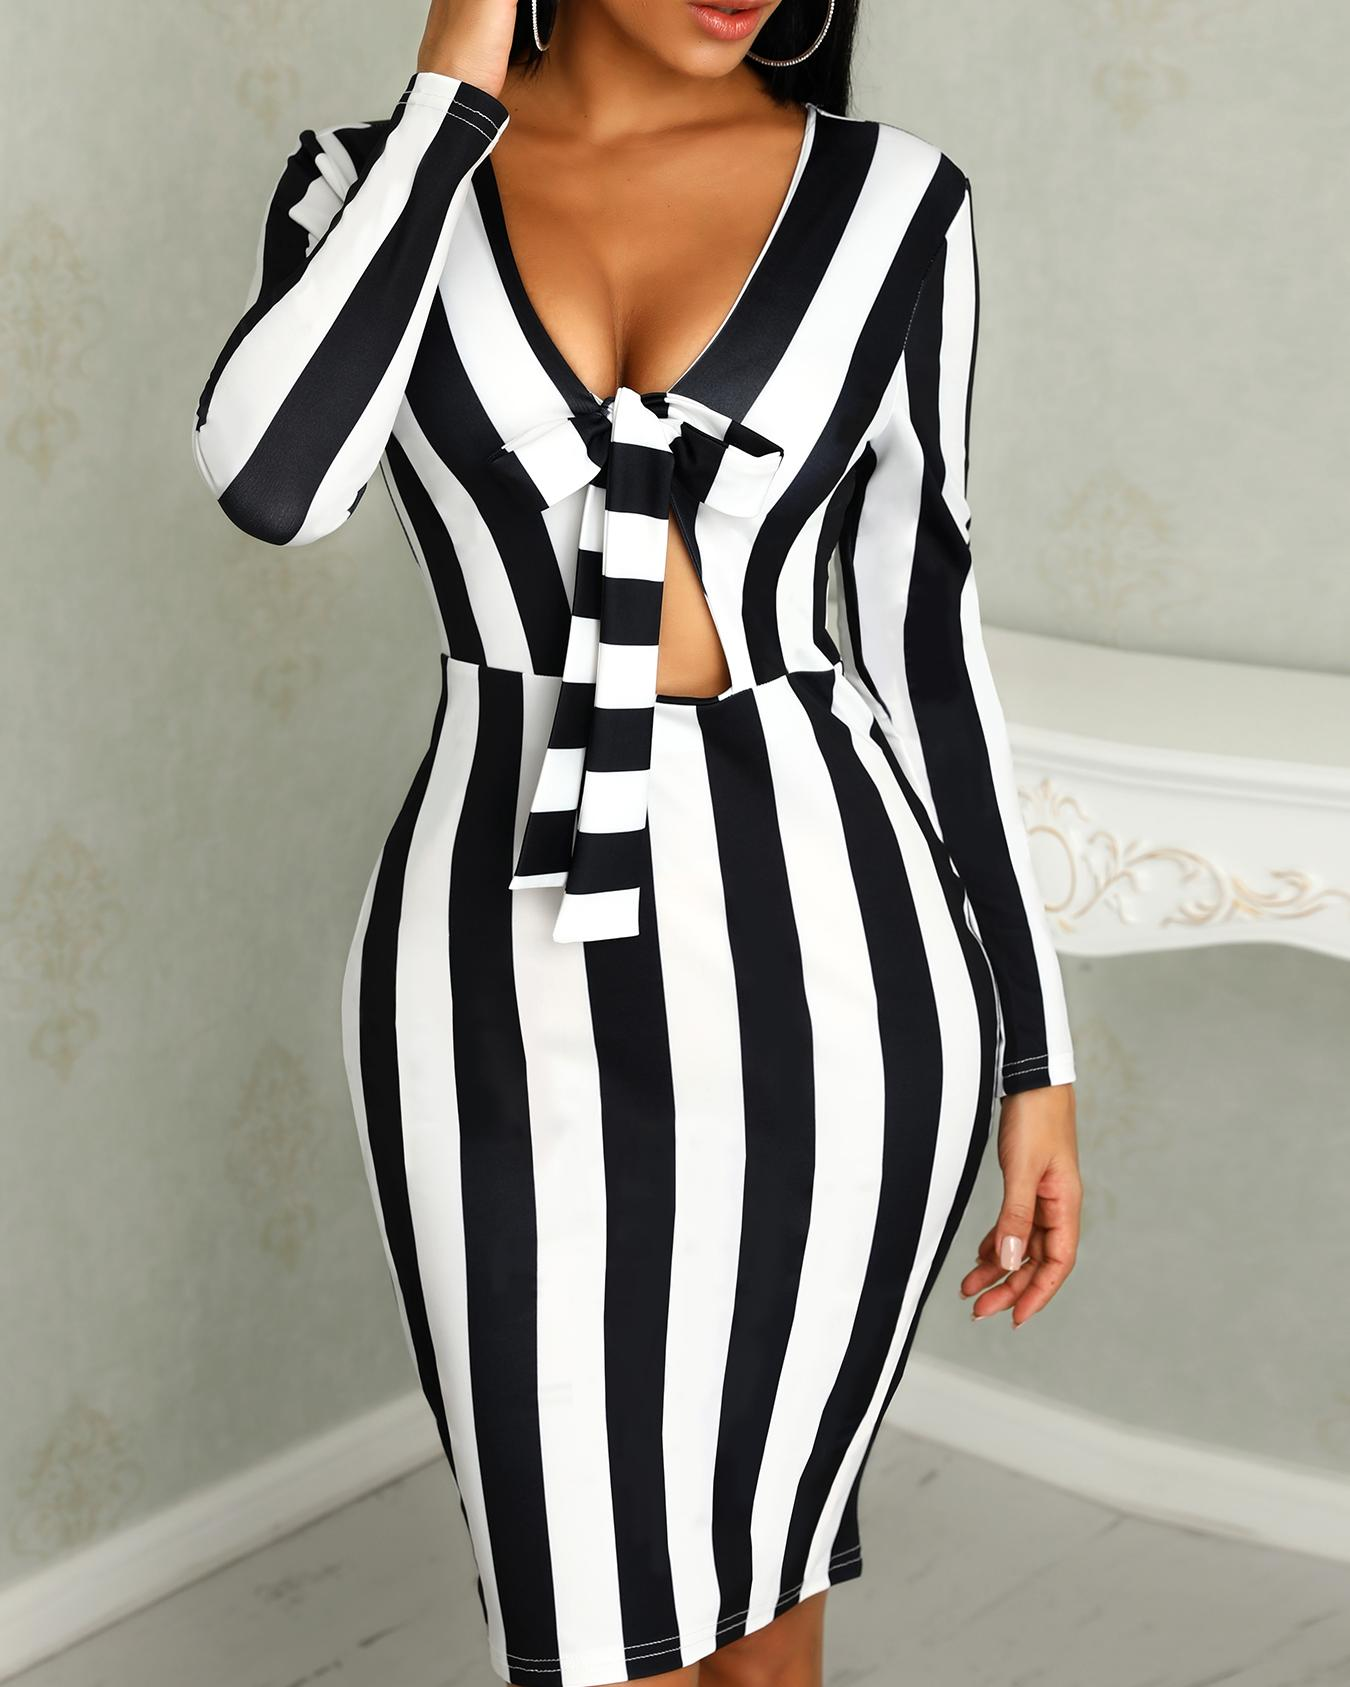 joyshoetique / Contrast Stripes Long Sleeve Knotted Bodycon Dress